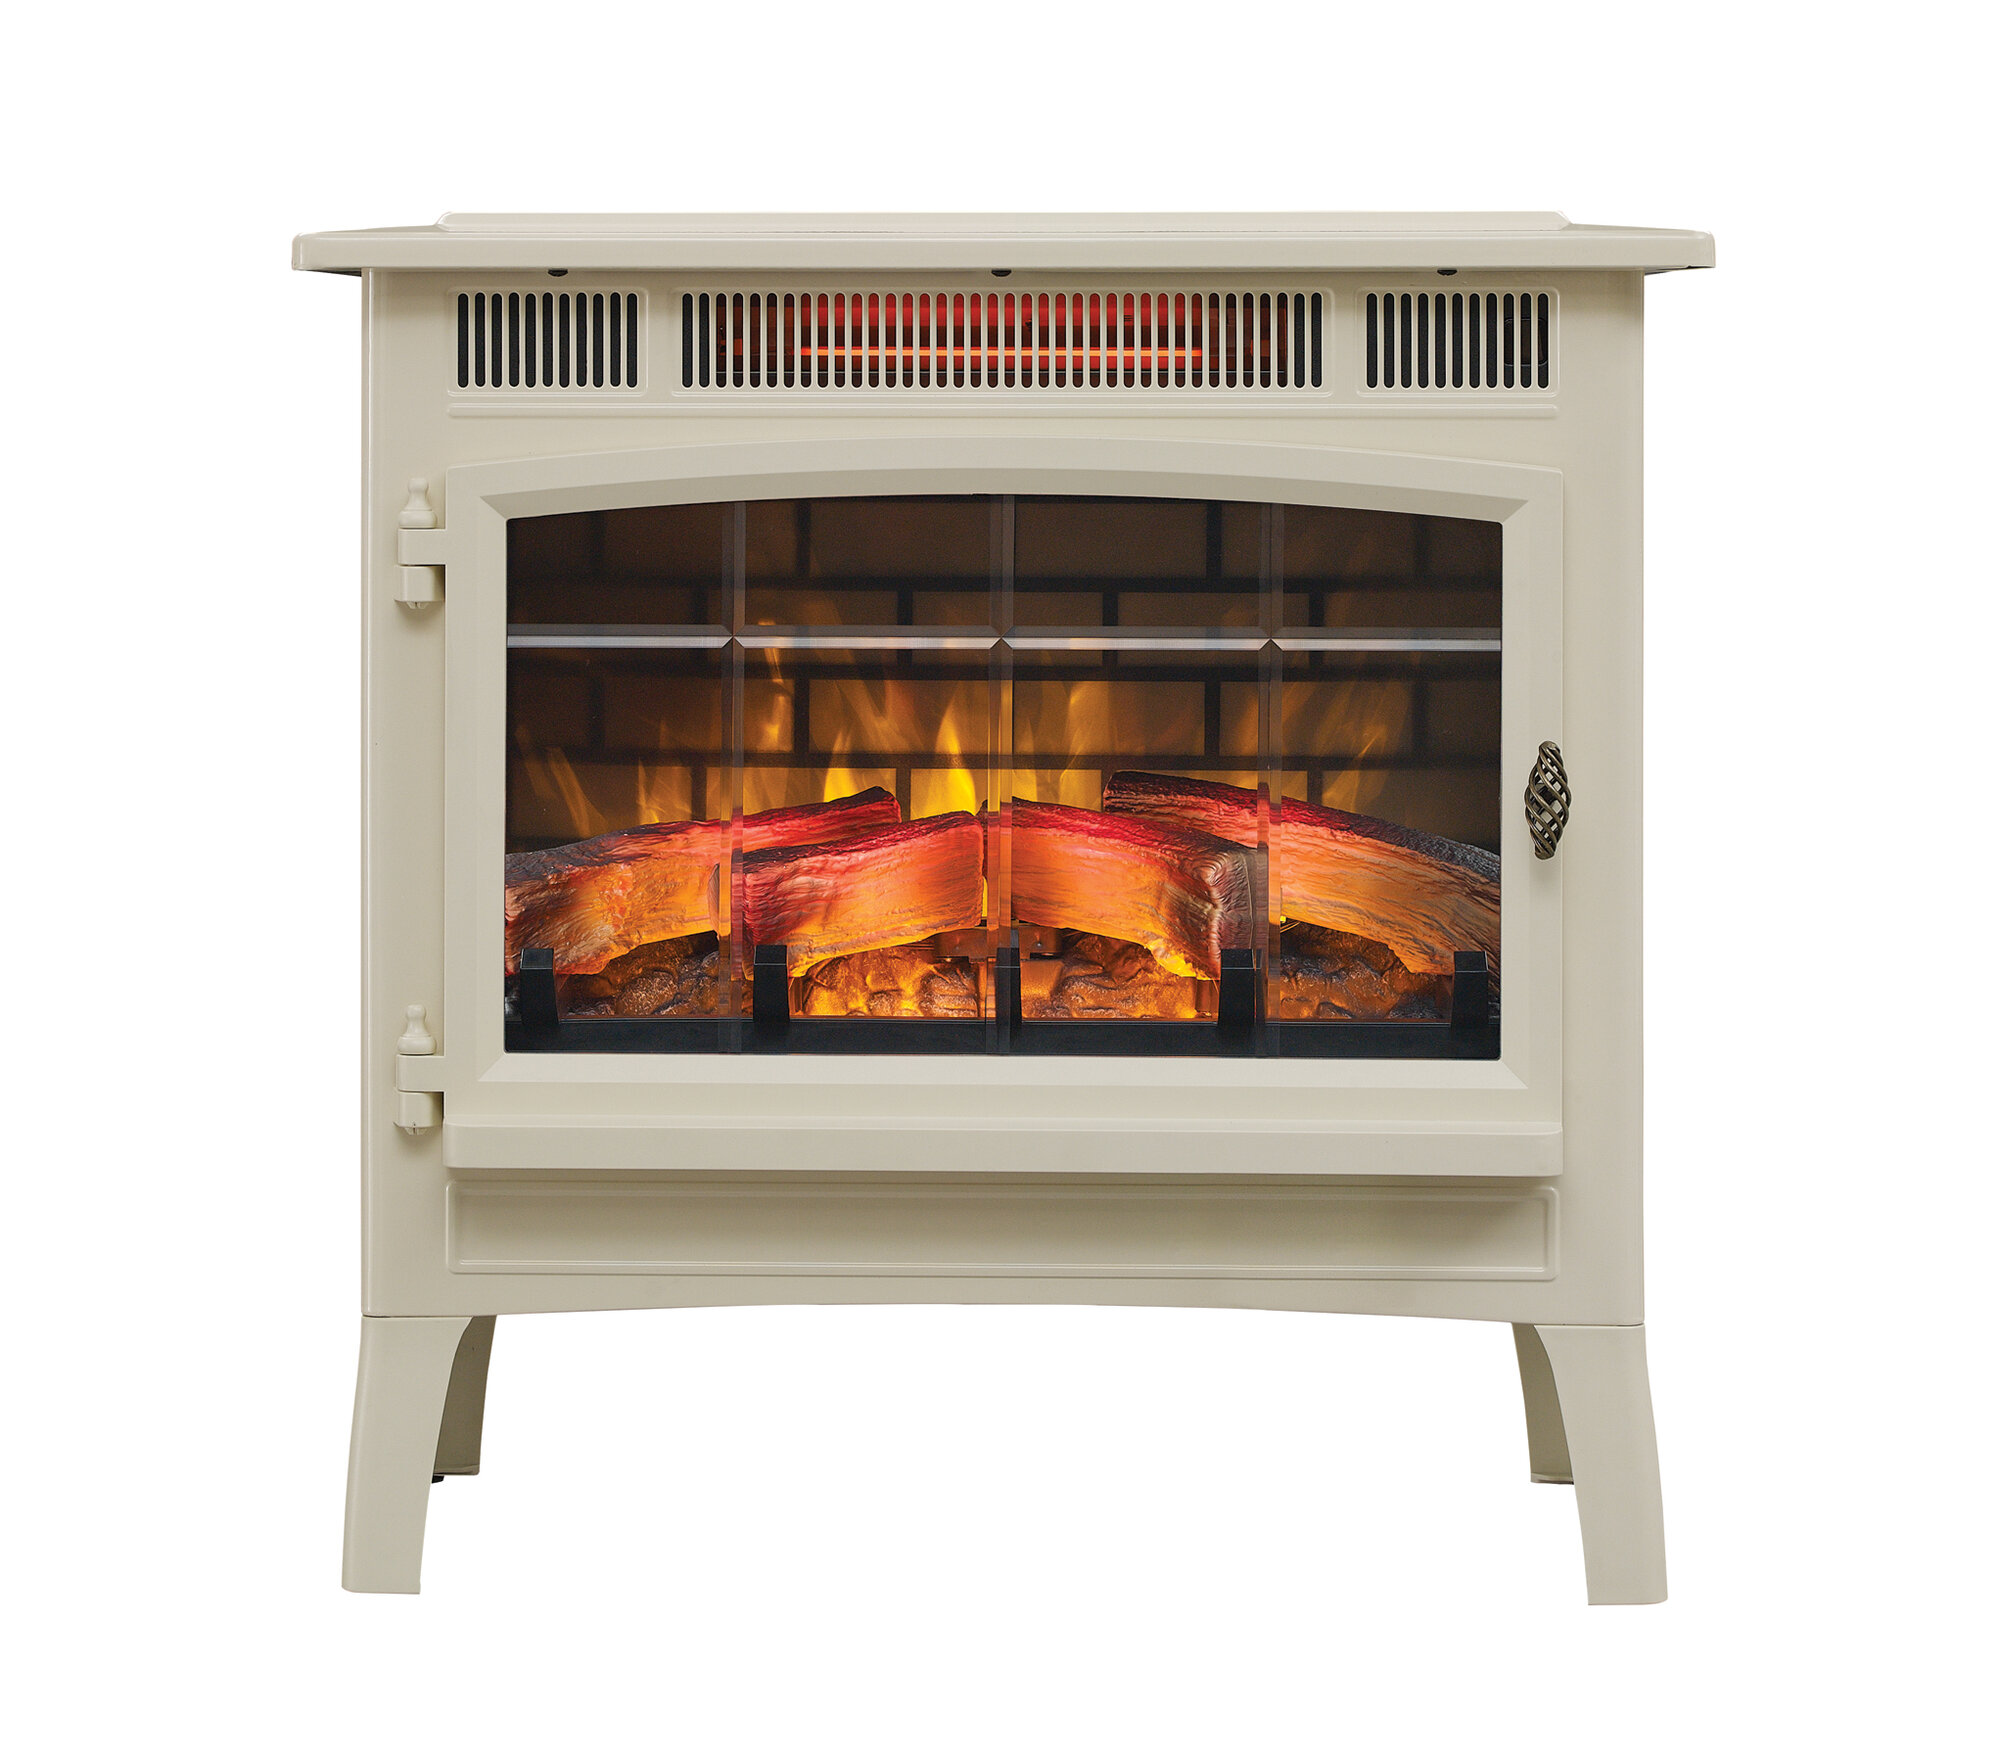 Duraflame Electric 3d Flame Effect Infrared Quartz